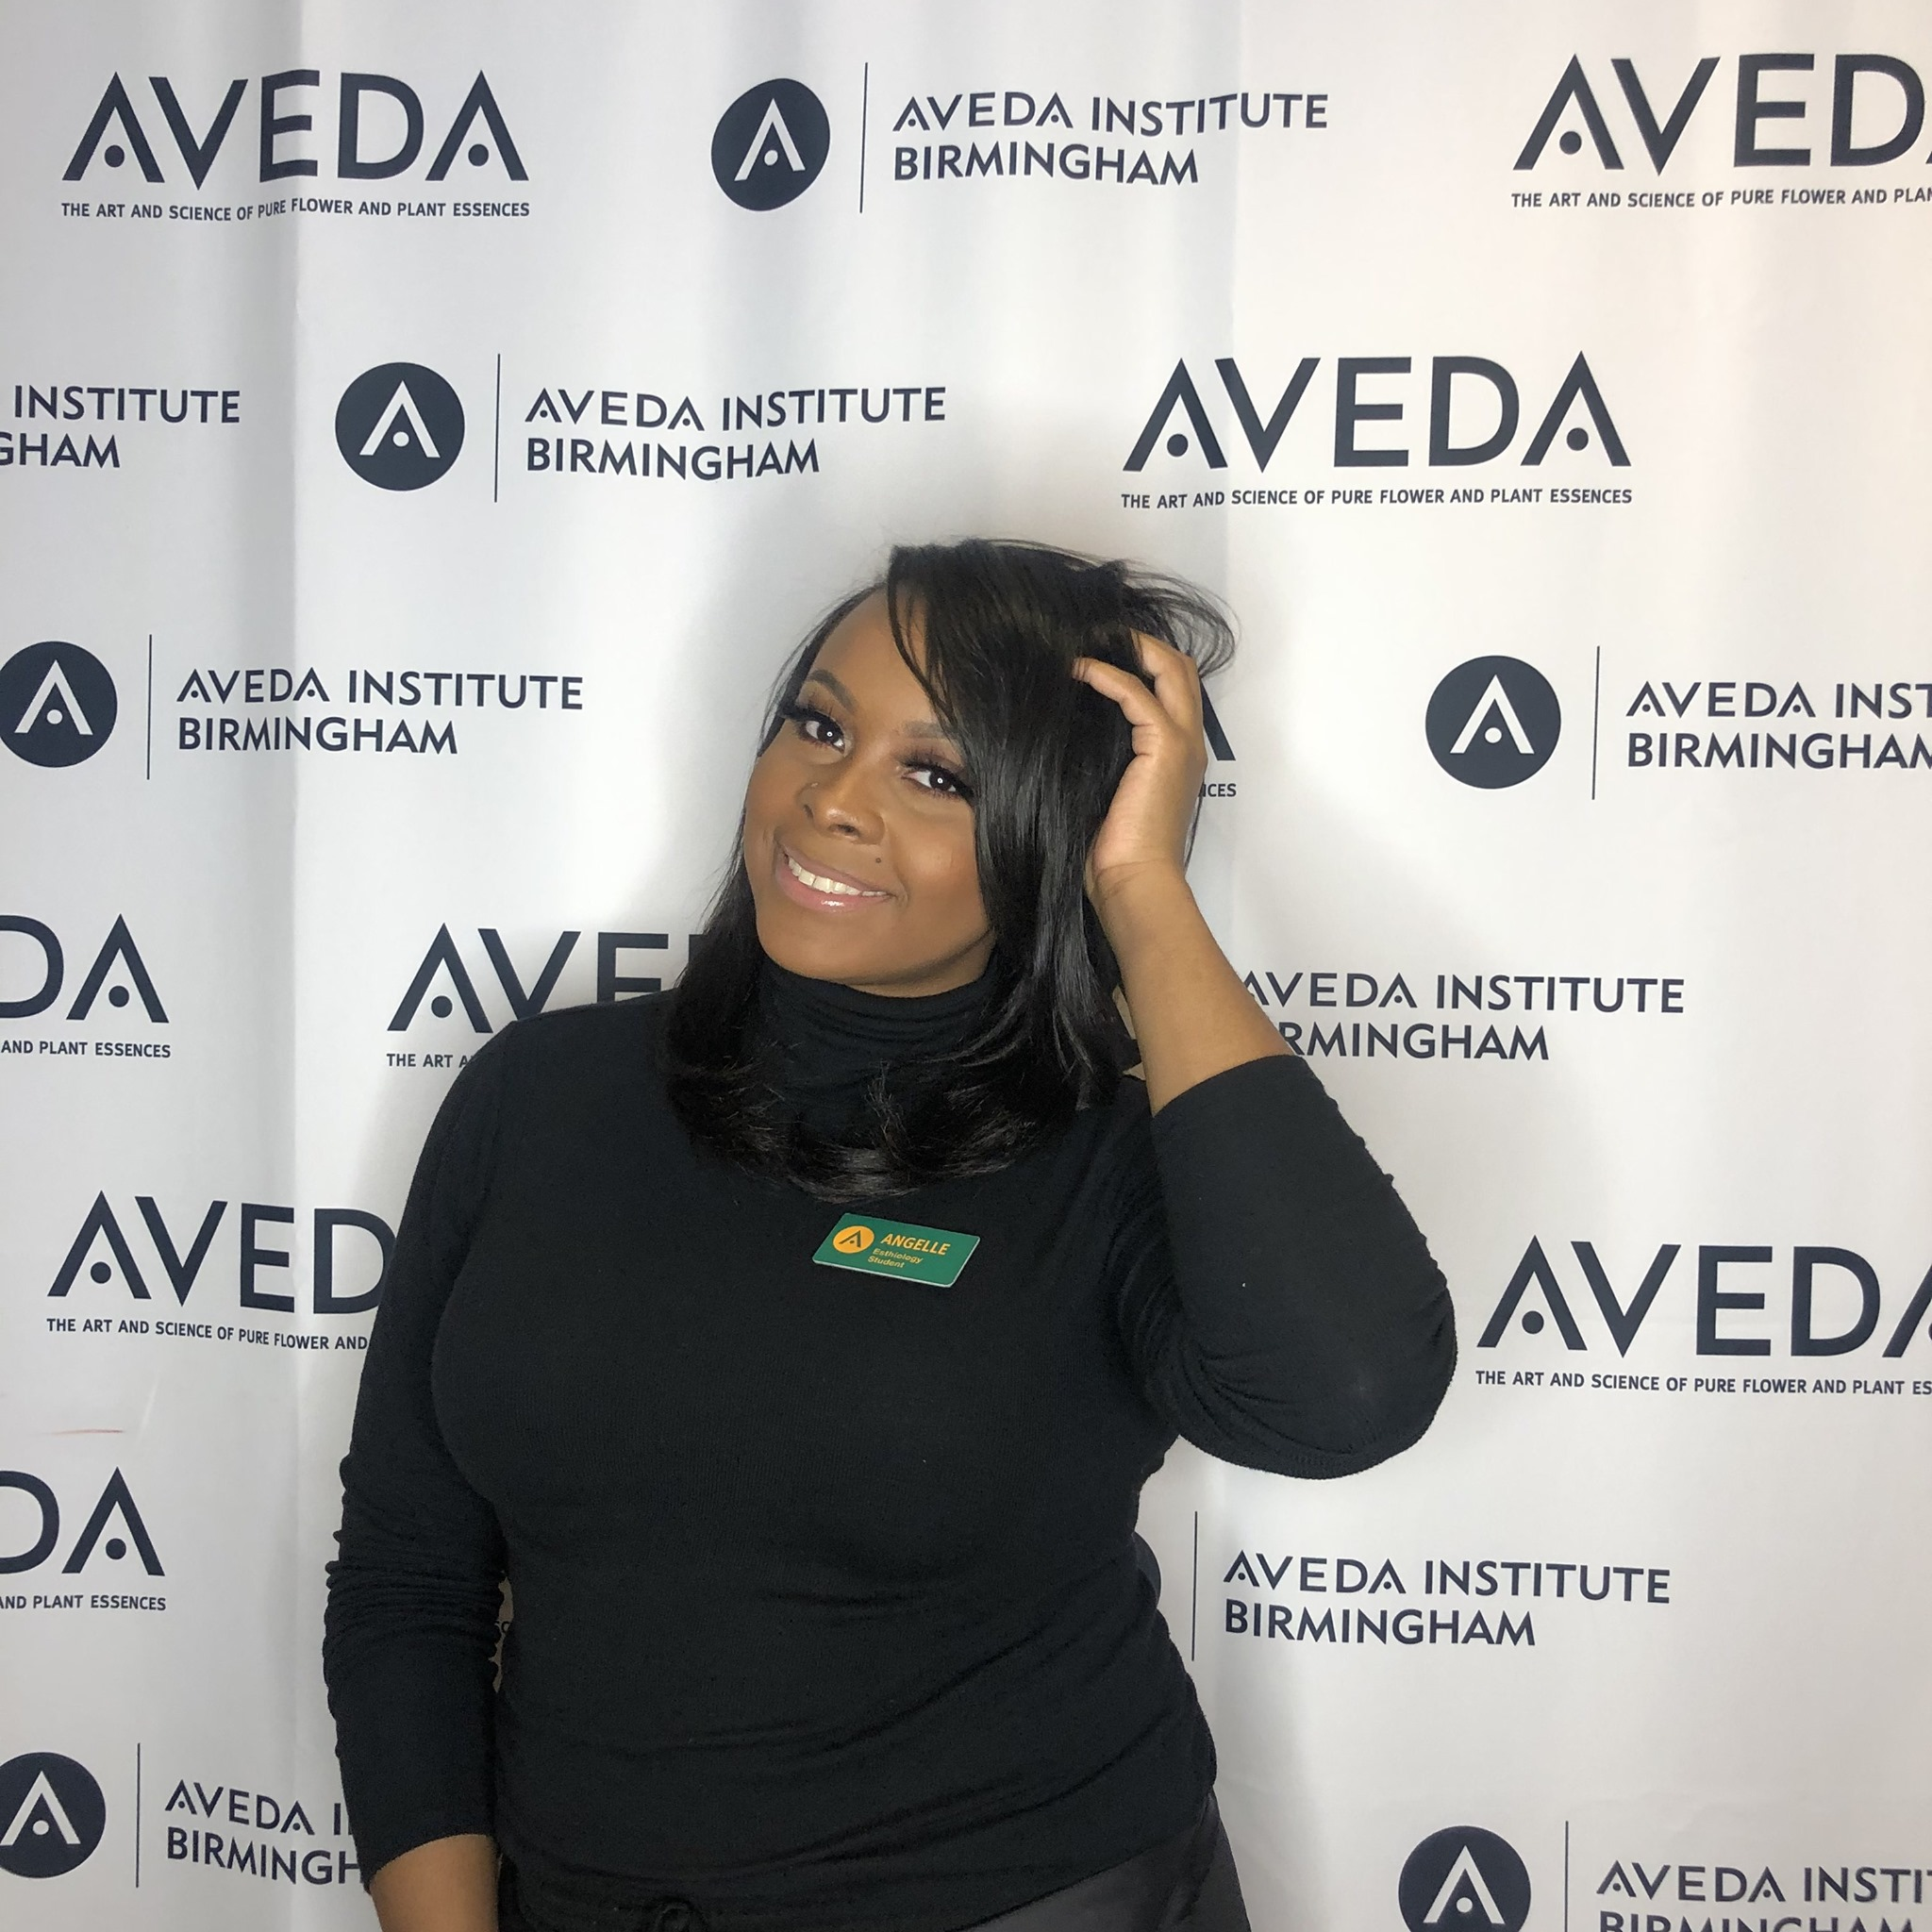 Haute Handz Salon is truly excited to welcome Angelle,our new Makeup & Esthetics Artist to the team